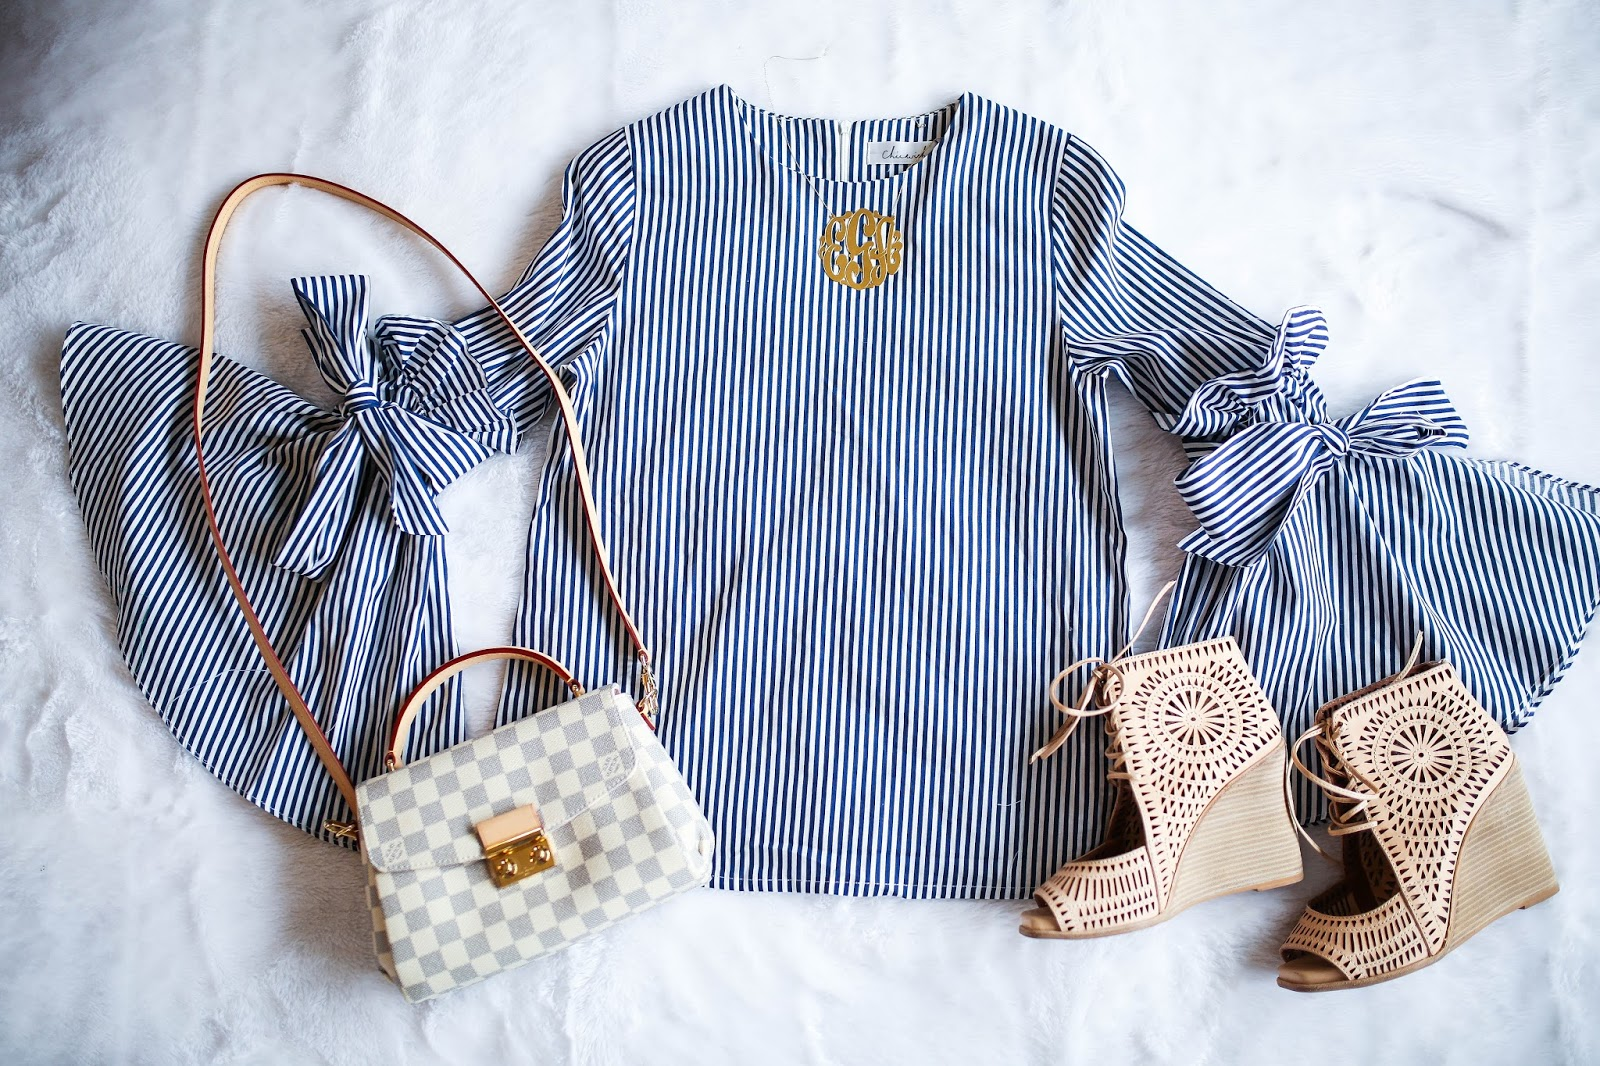 Affordable Forever 21 Spring Shopping Haul The Sweetest Thing